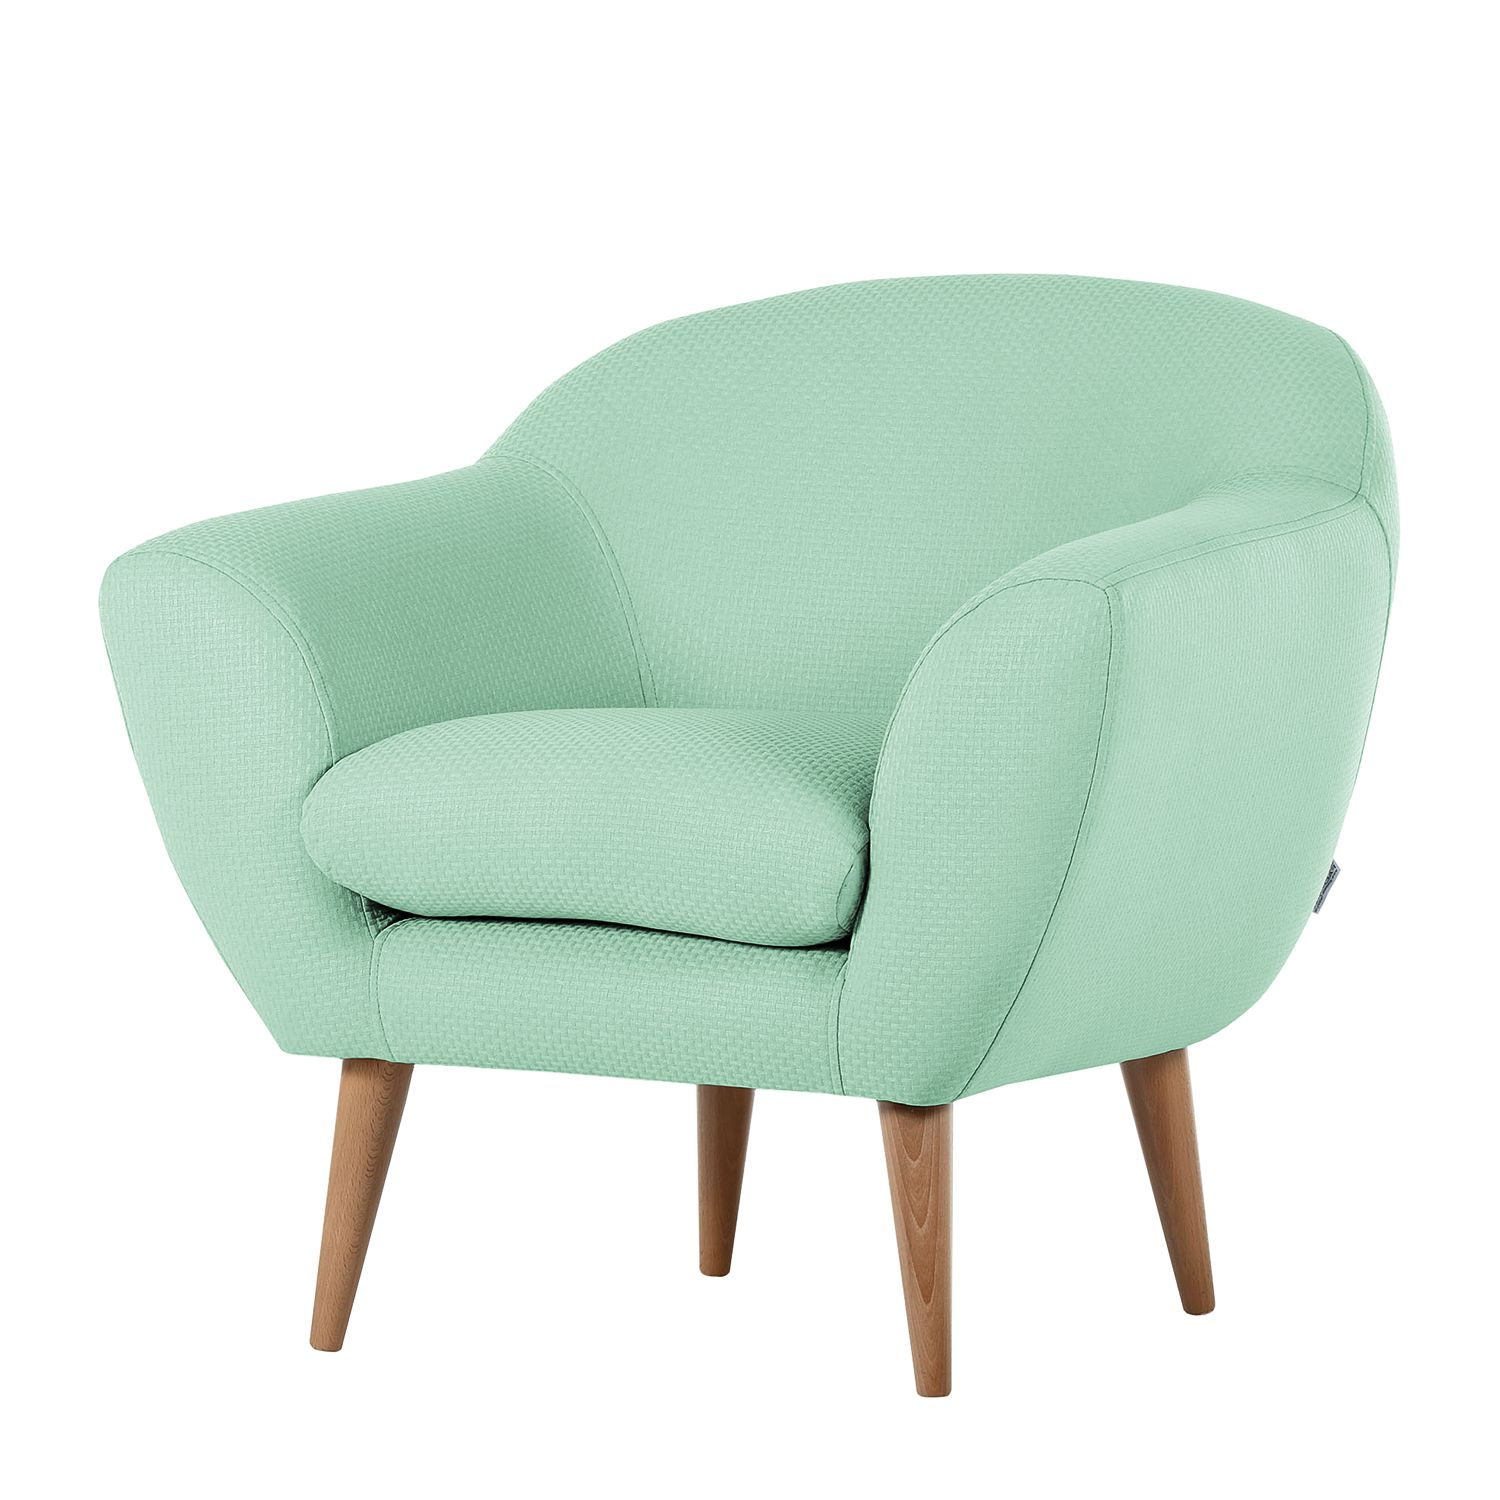 Fauteuil Villy, Norrwood